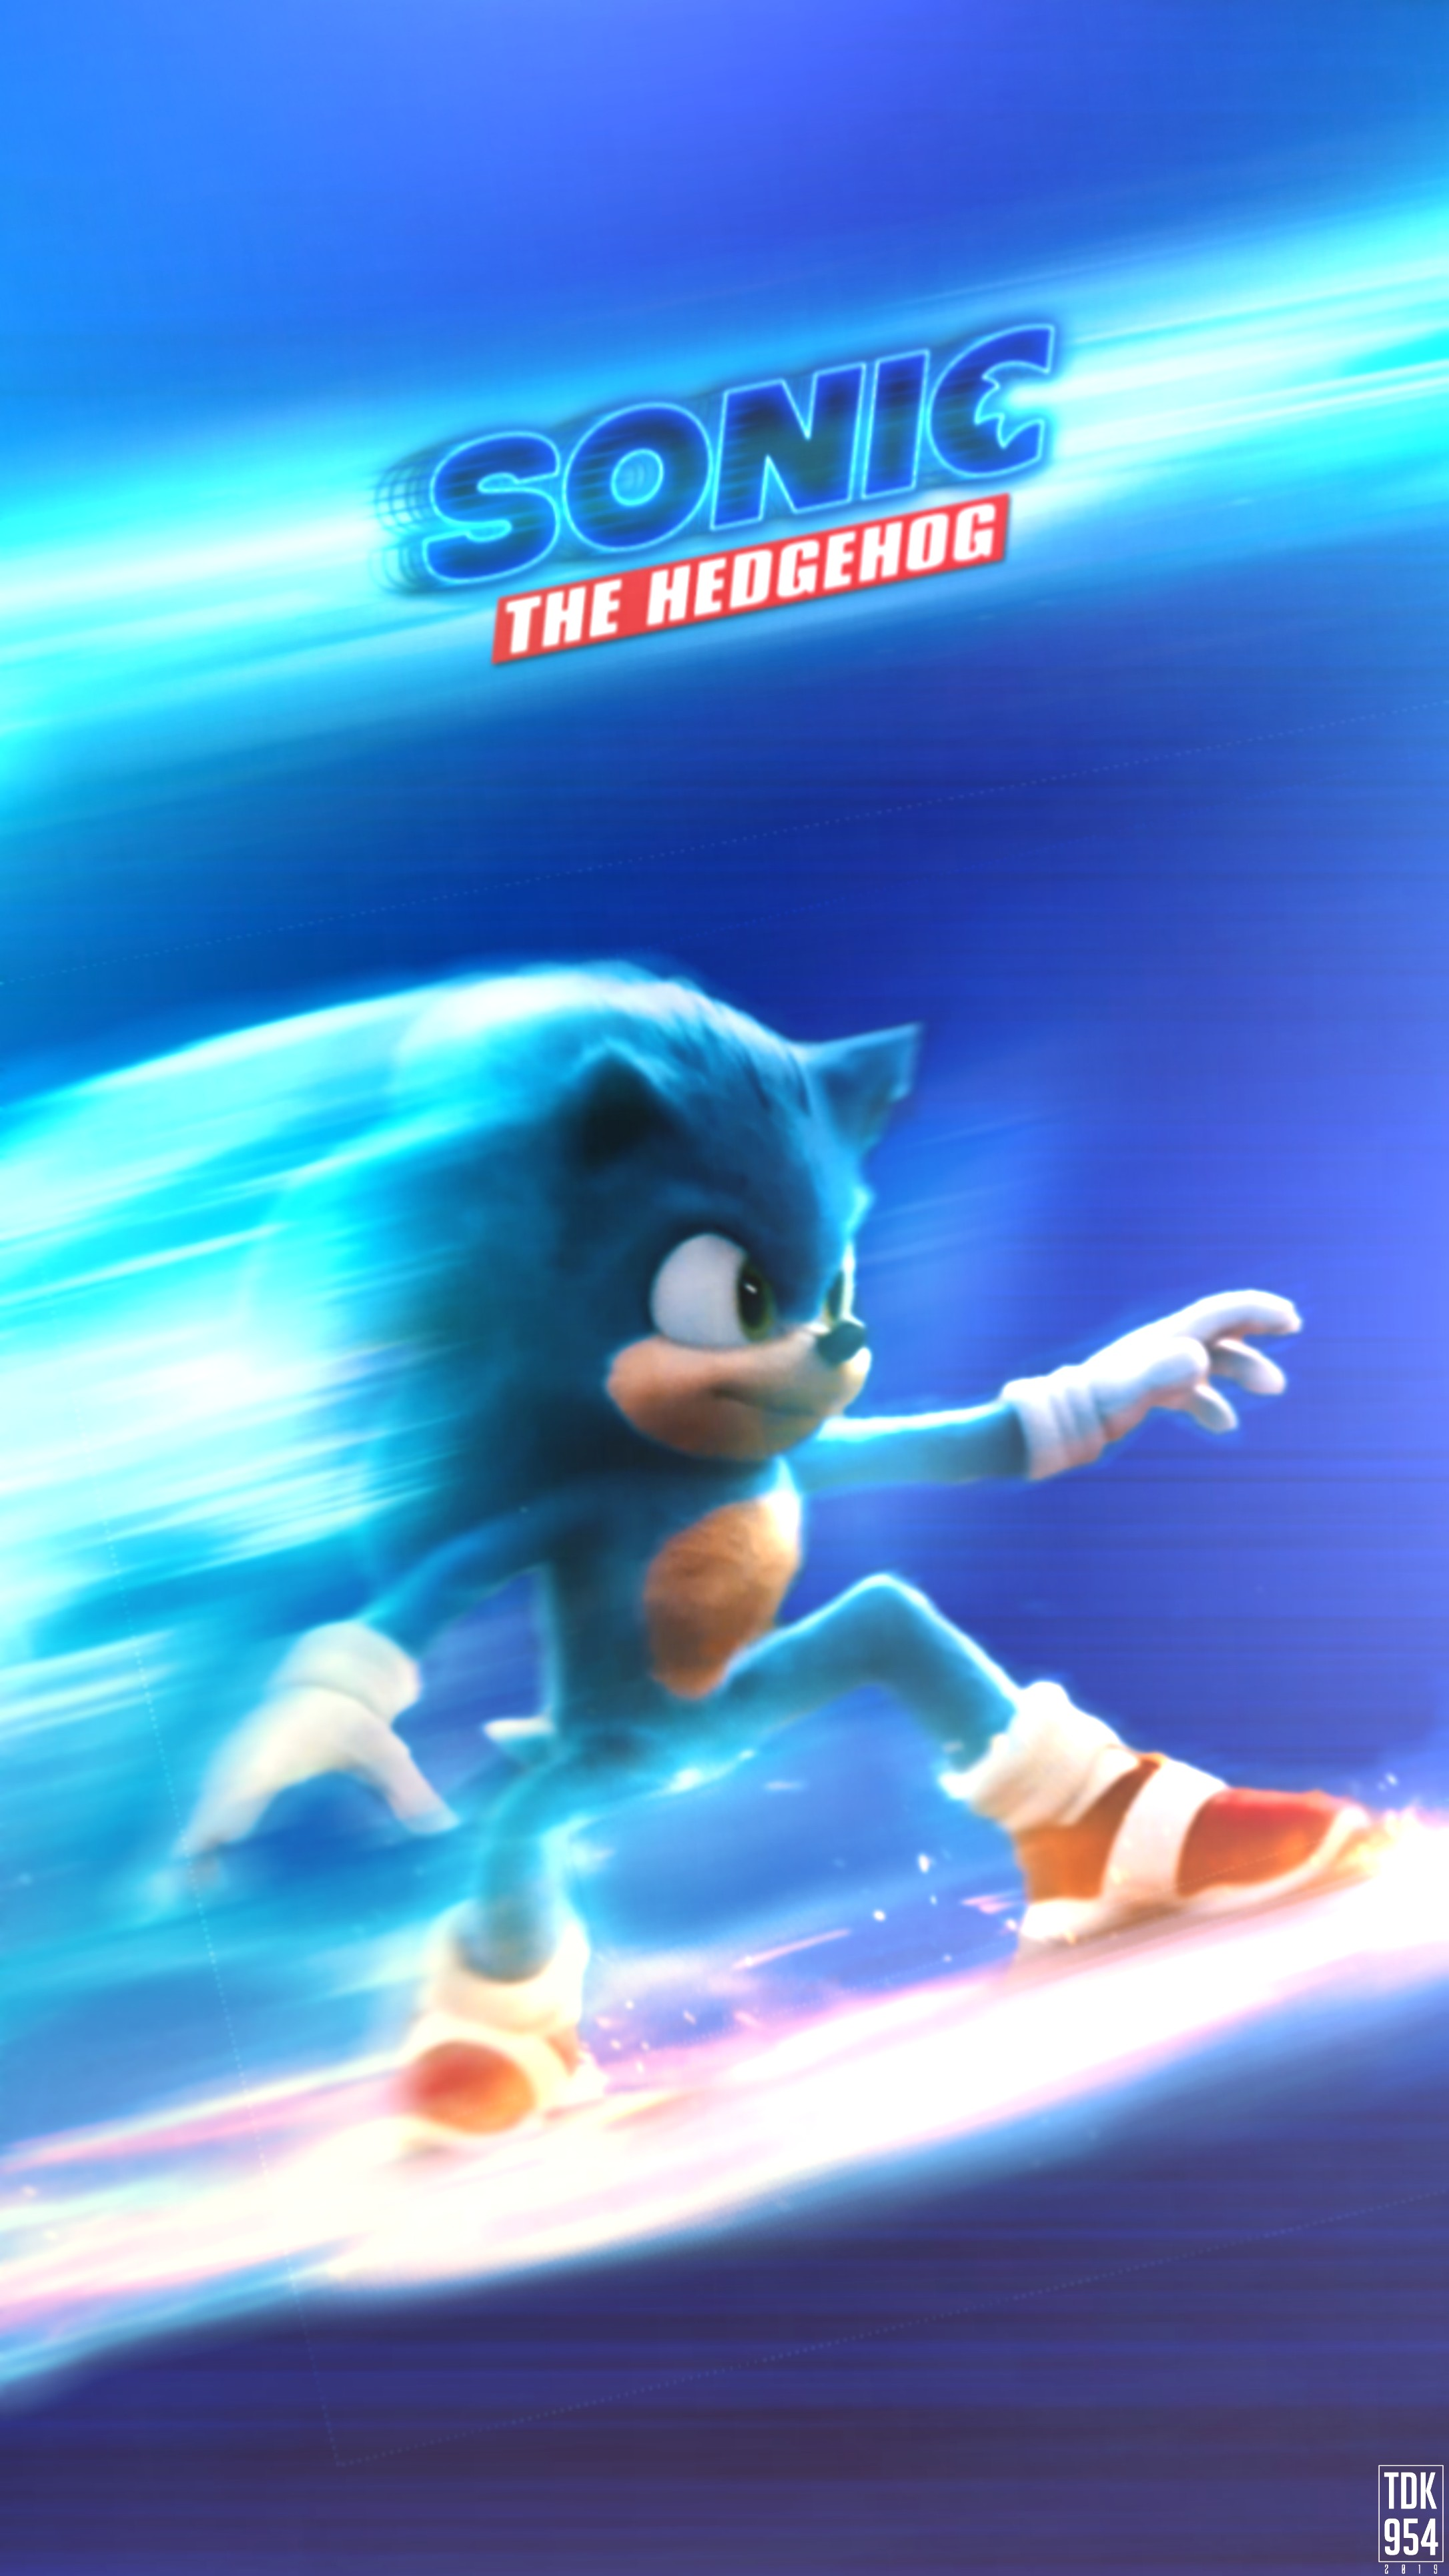 Sonic The Hedgehog Movie Poster Mobile Wallpape By Thedarkknight954 On Deviantart